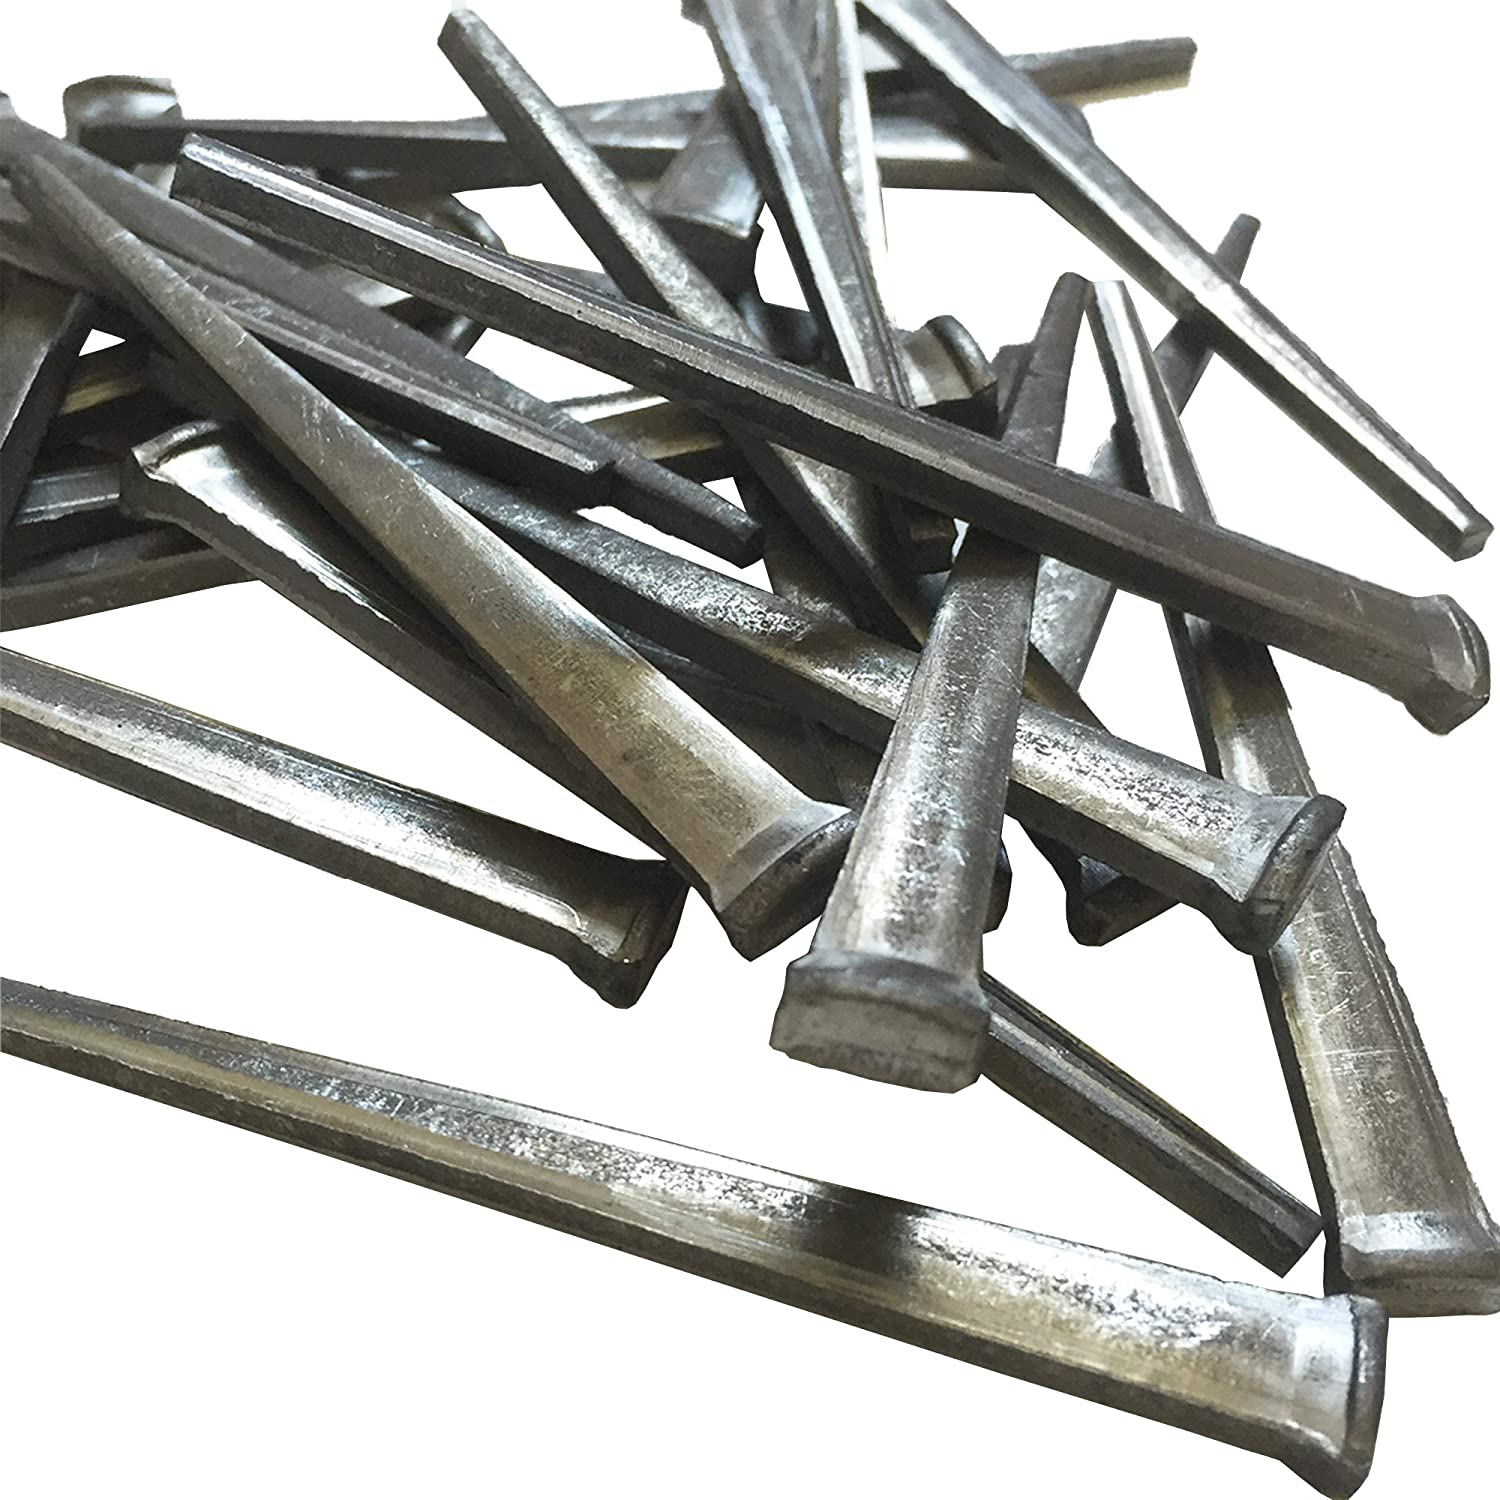 Cut Clasp Nail 1kg 3 inch ... Old stock